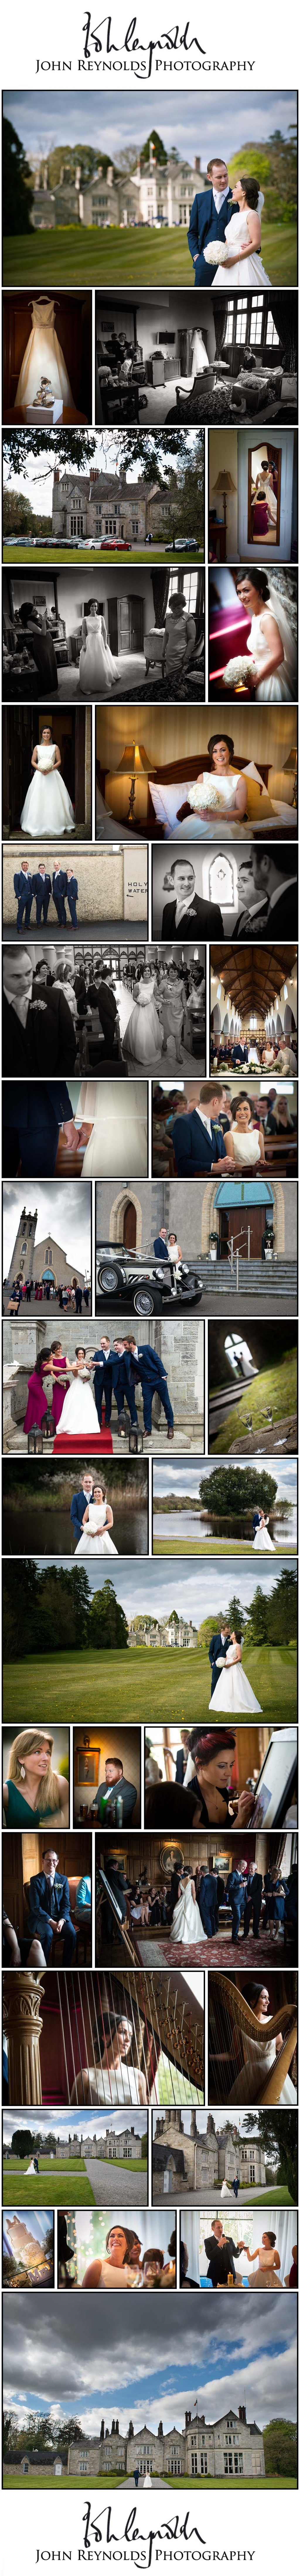 Blog Collage-Aideen & Tomás